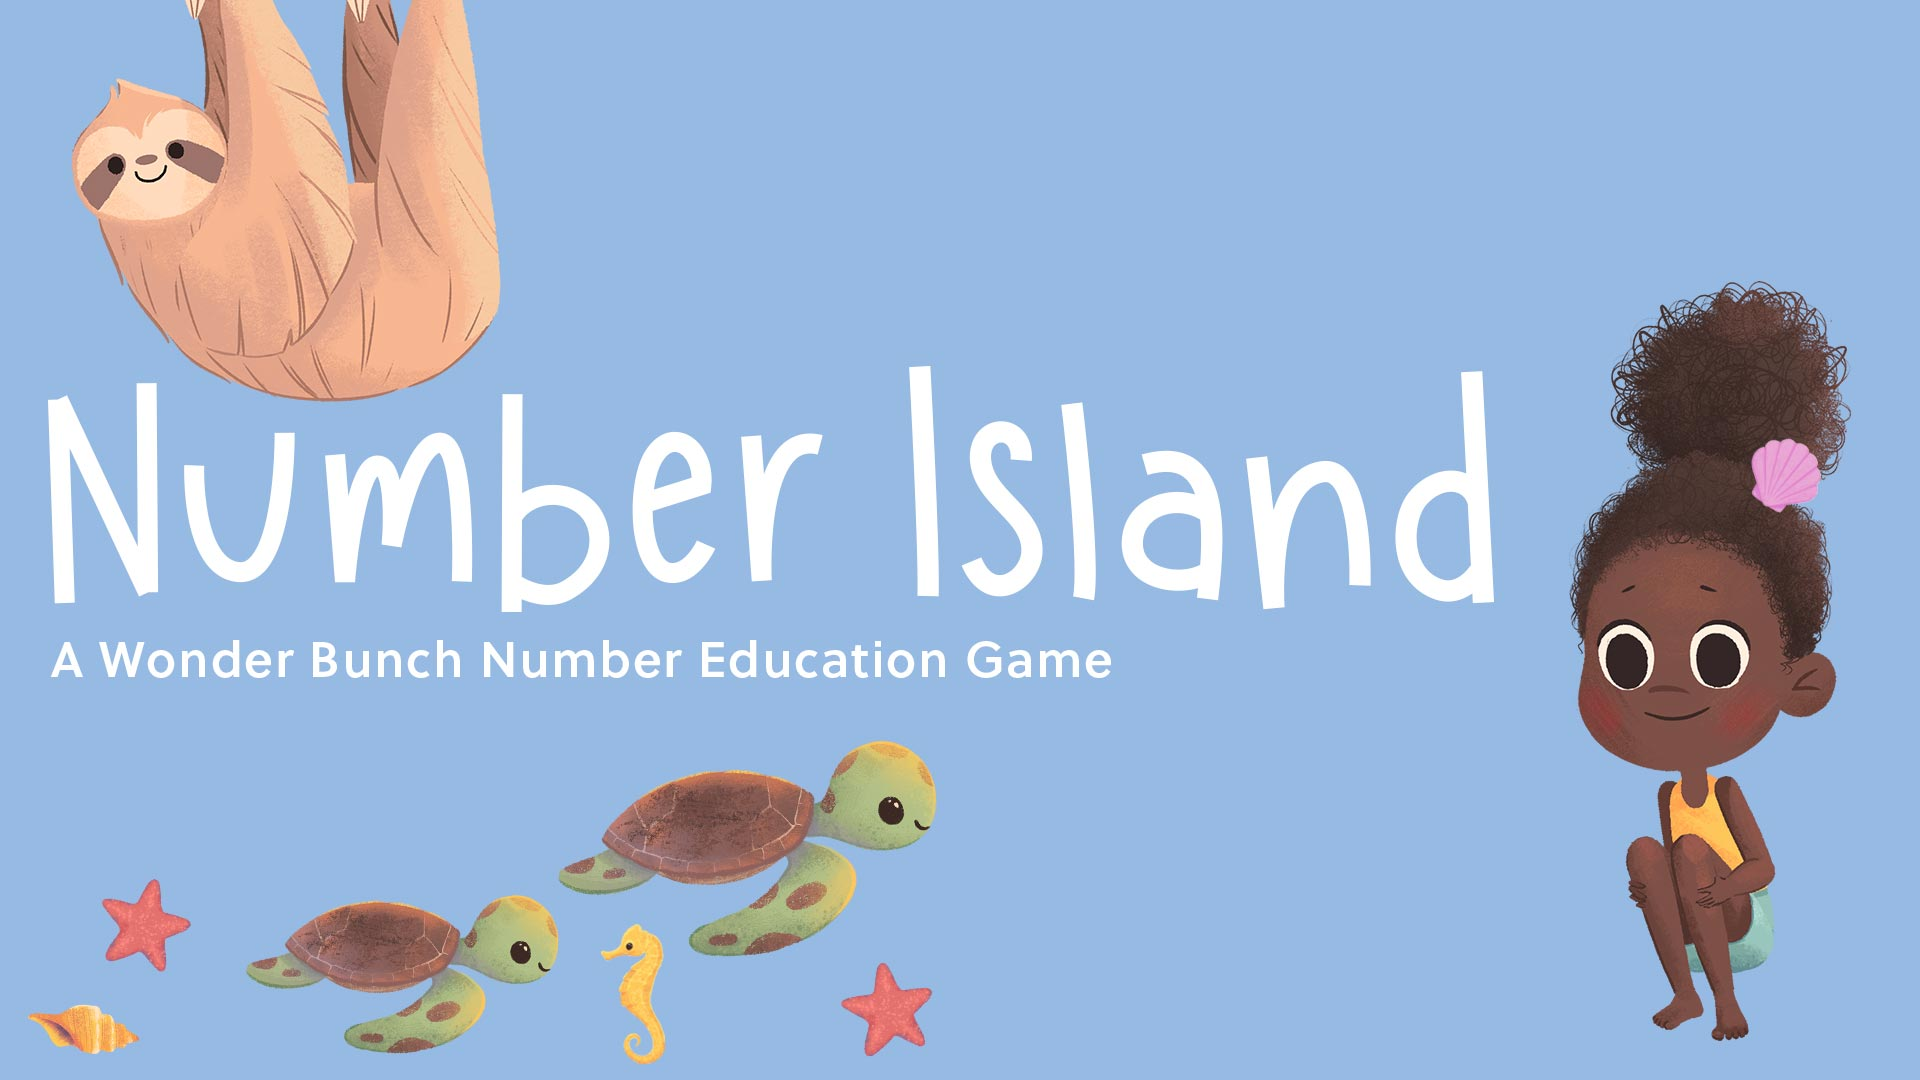 Number Island - A Wonder Bunch Number Education Game